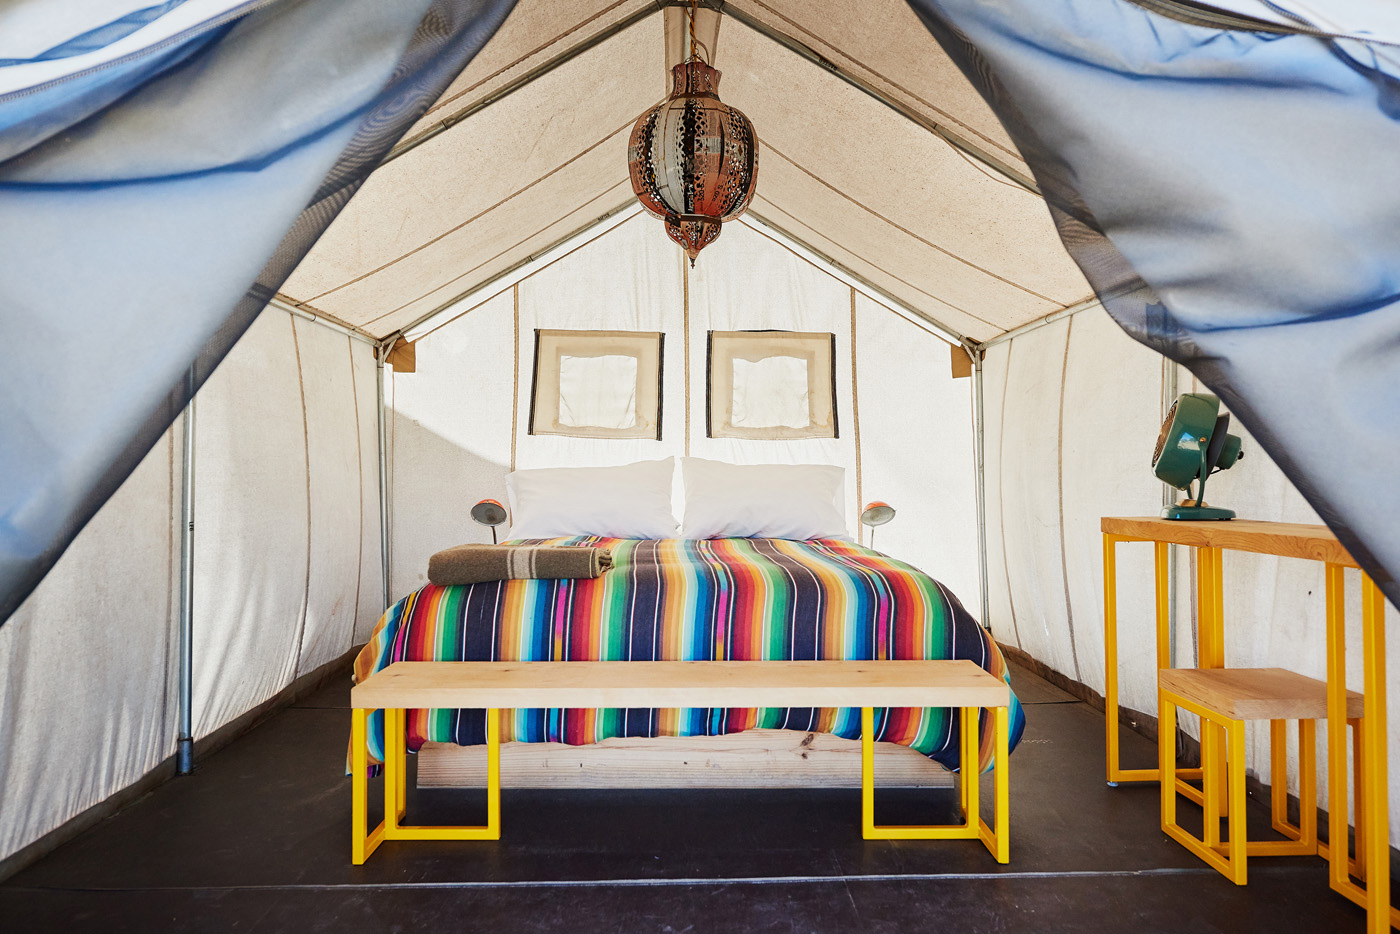 Glamping Tents Make You Feel at Home on the Range